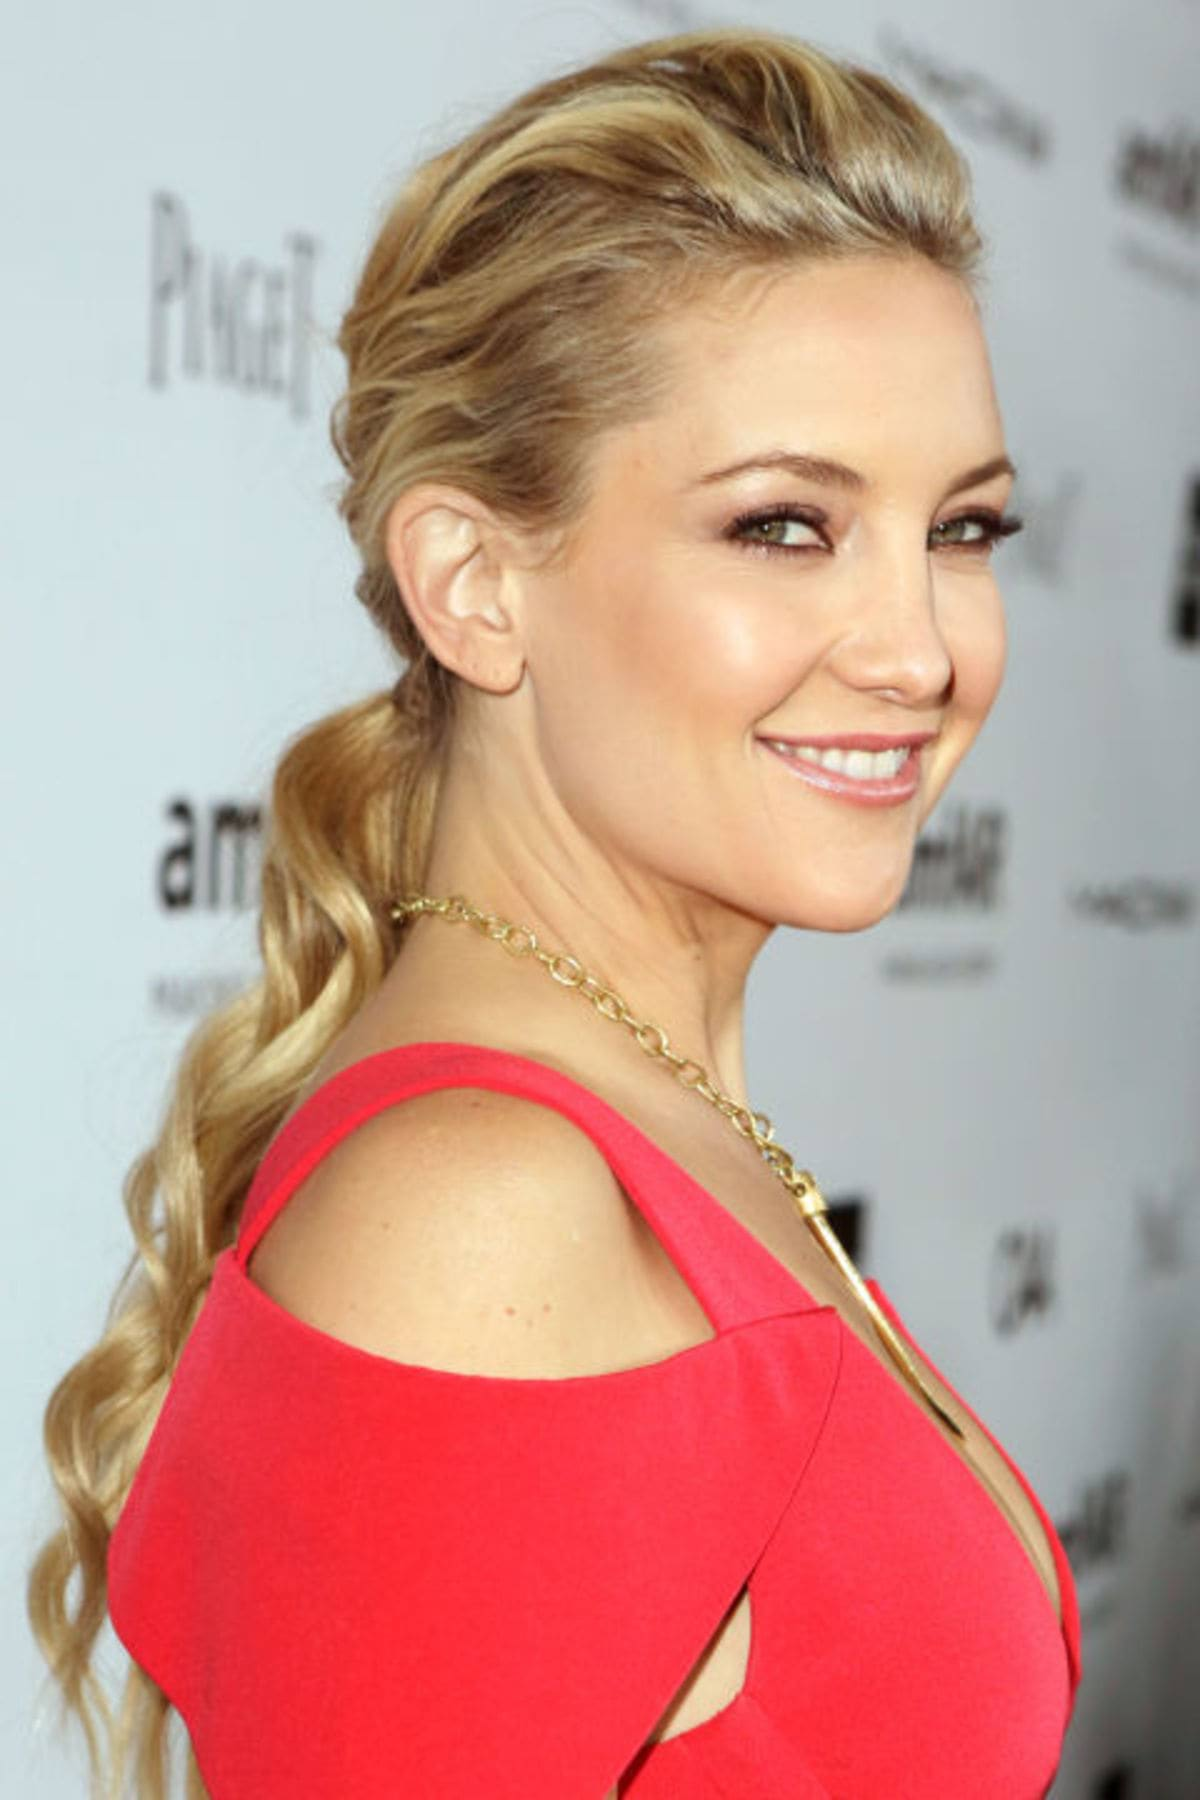 54bd0fa845287_-_hbz-the-list-ponytails-08-kate-hudson